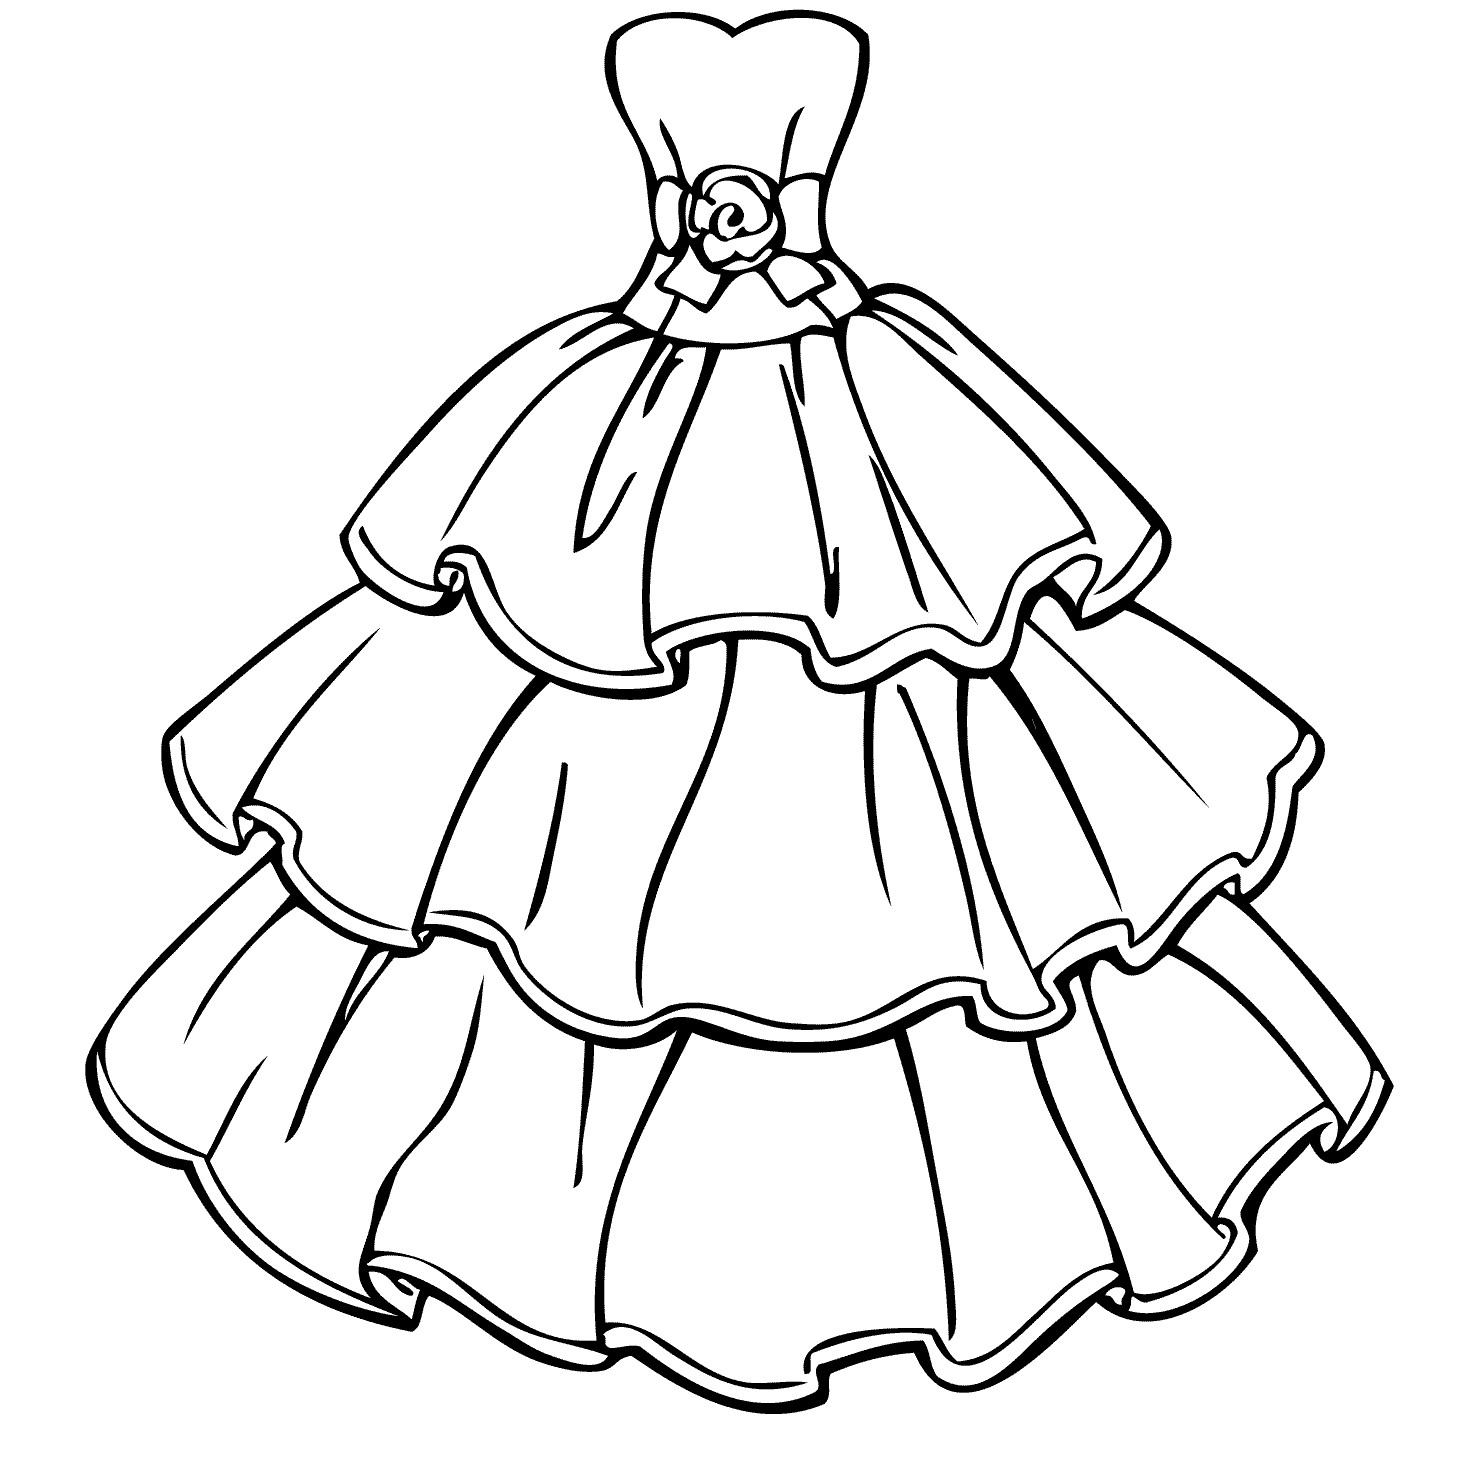 dress coloring pages to download and print for free Disney Wedding Signs Disney Wedding Clip Art Borders